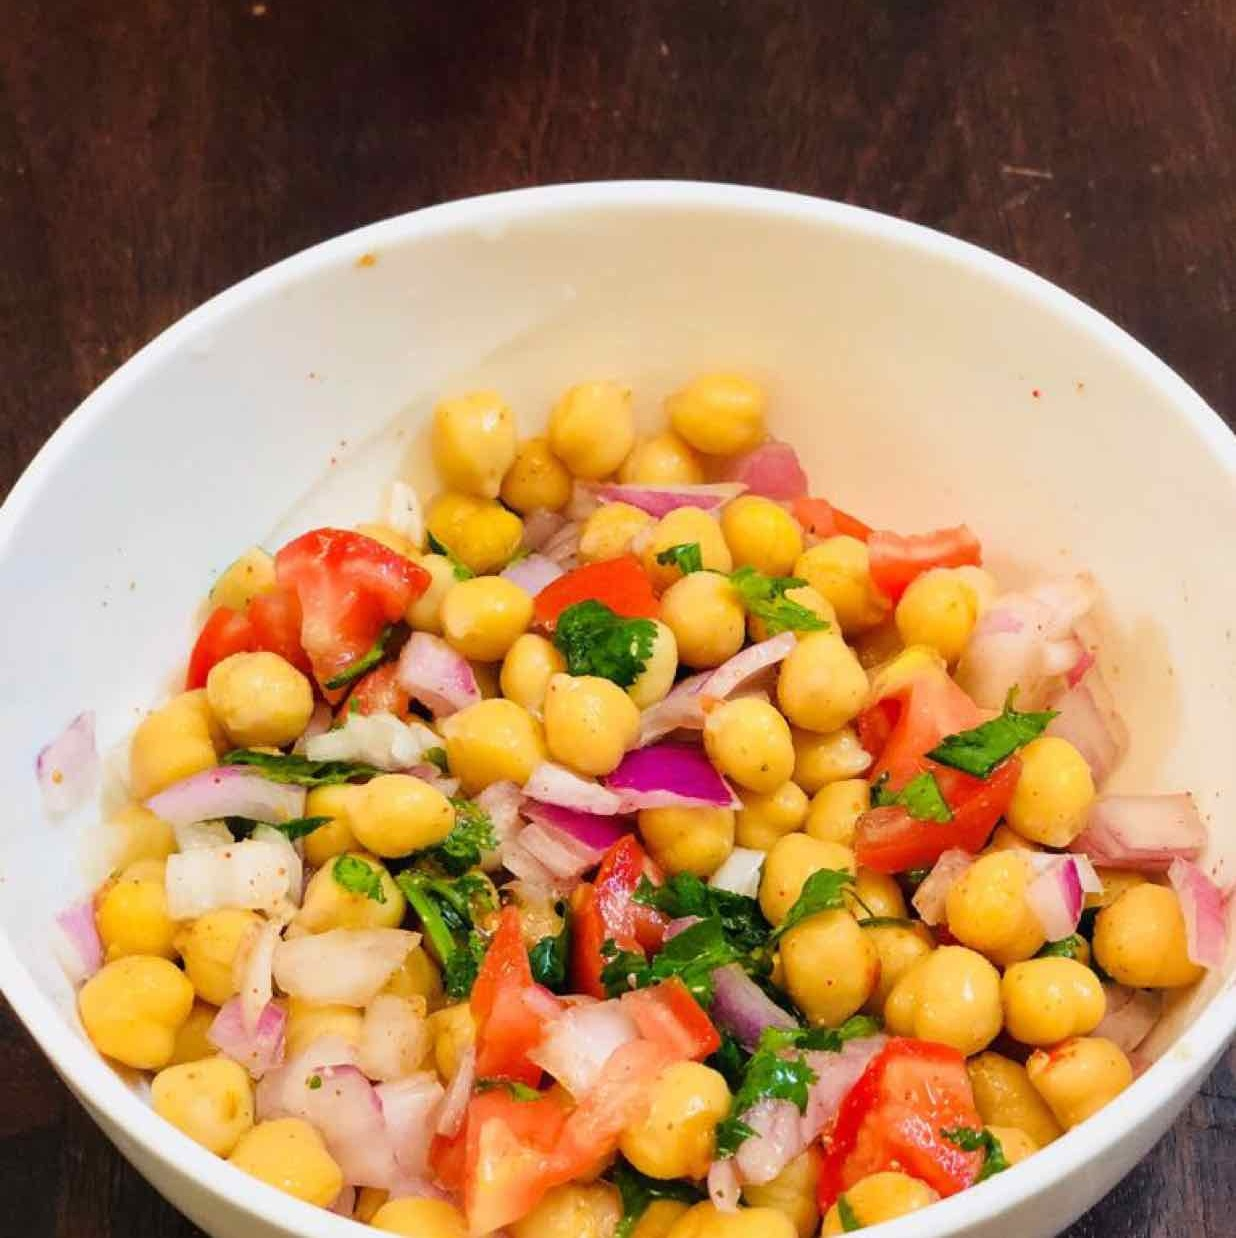 How to make chickpeas salad